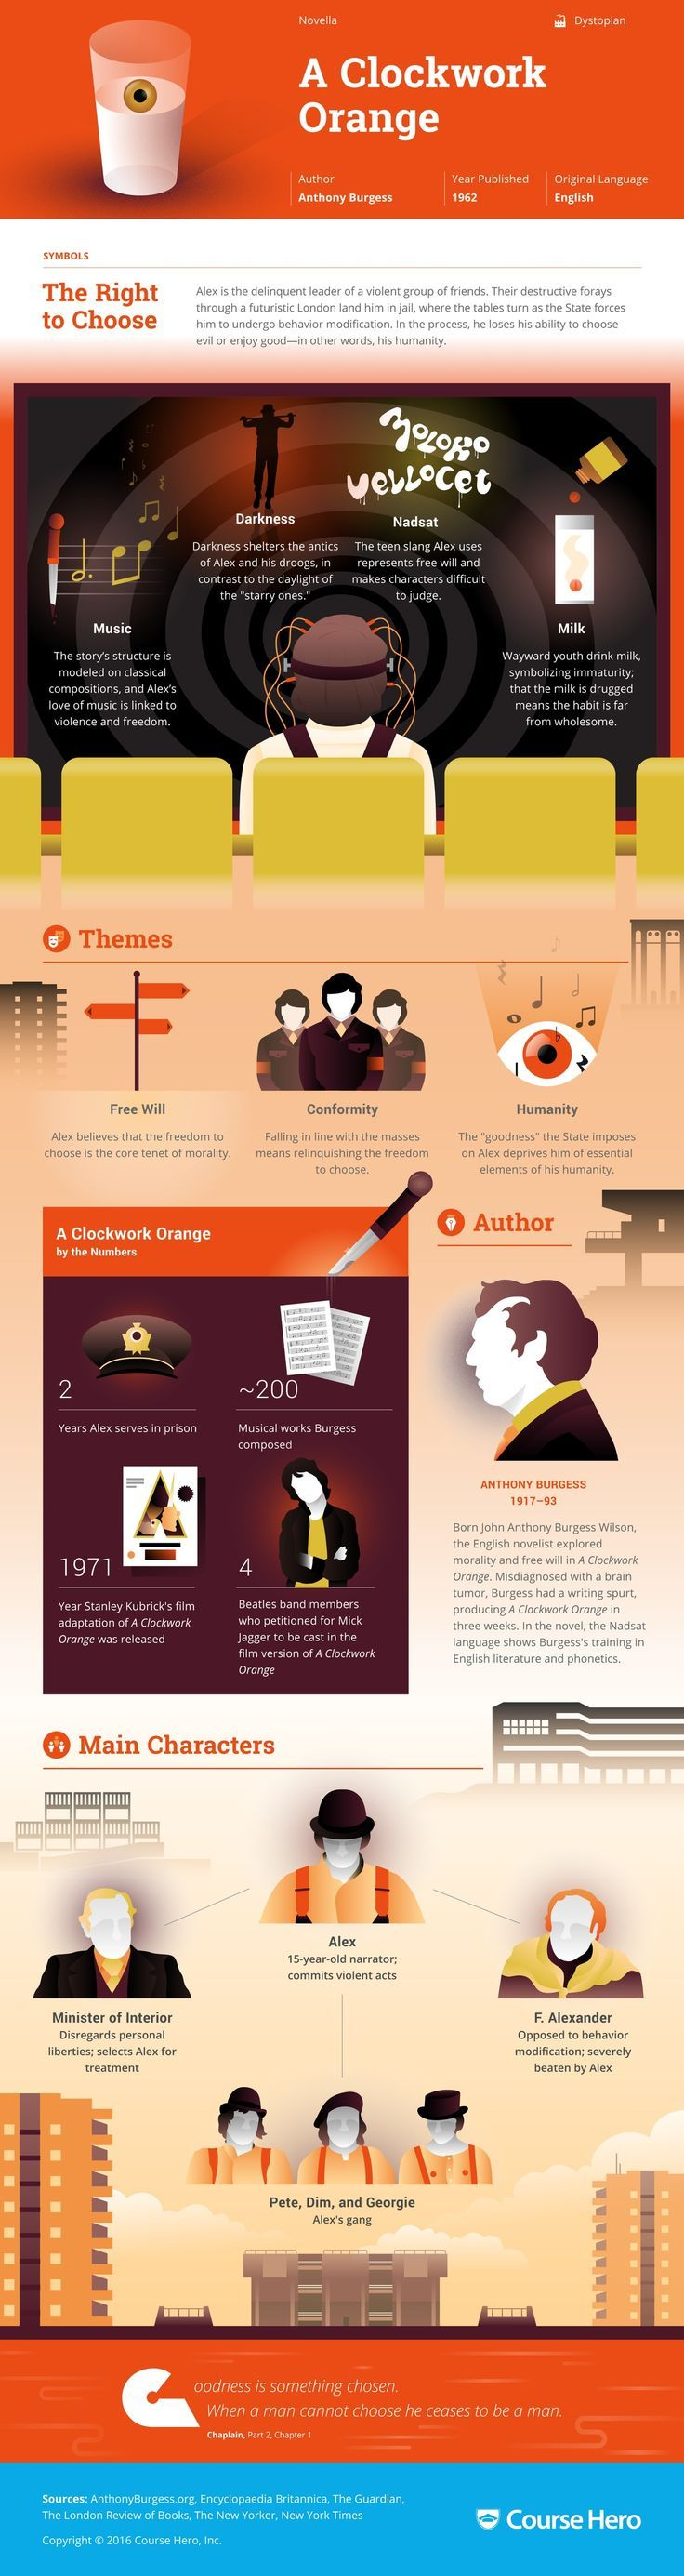 best images about infographics social media study guide for anthony burgess s a clockwork orange including chapter summary character analysis and more learn all about a clockwork orange